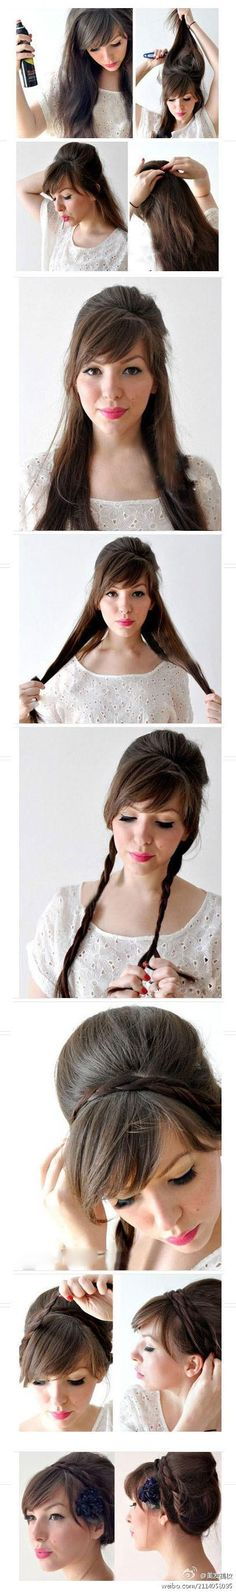 Don't like the updo much, but the poof and the braids are cute :)